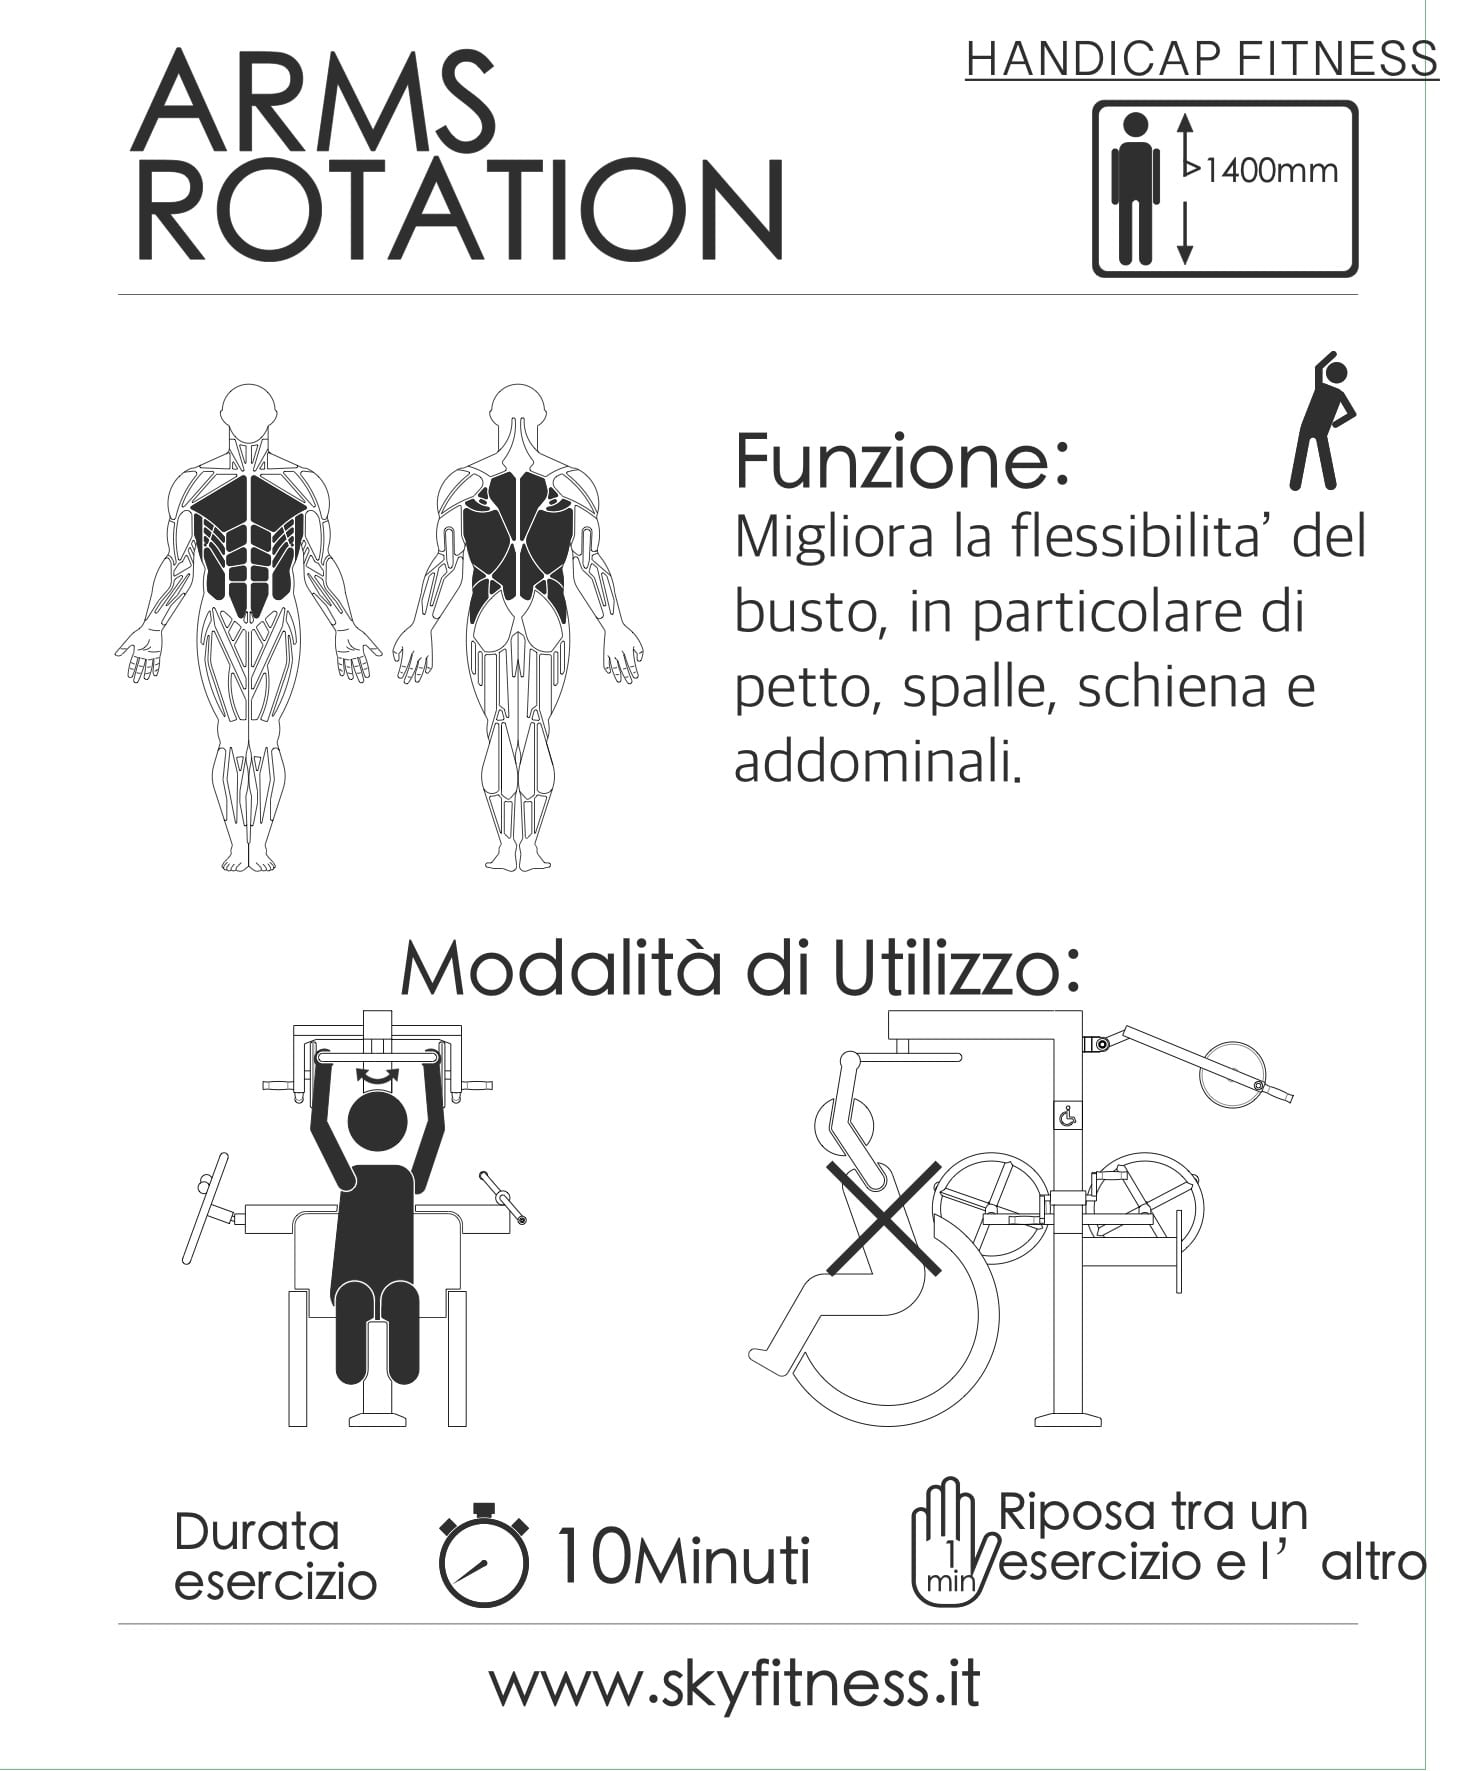 FIT HD M 1 ARMS ROTATION